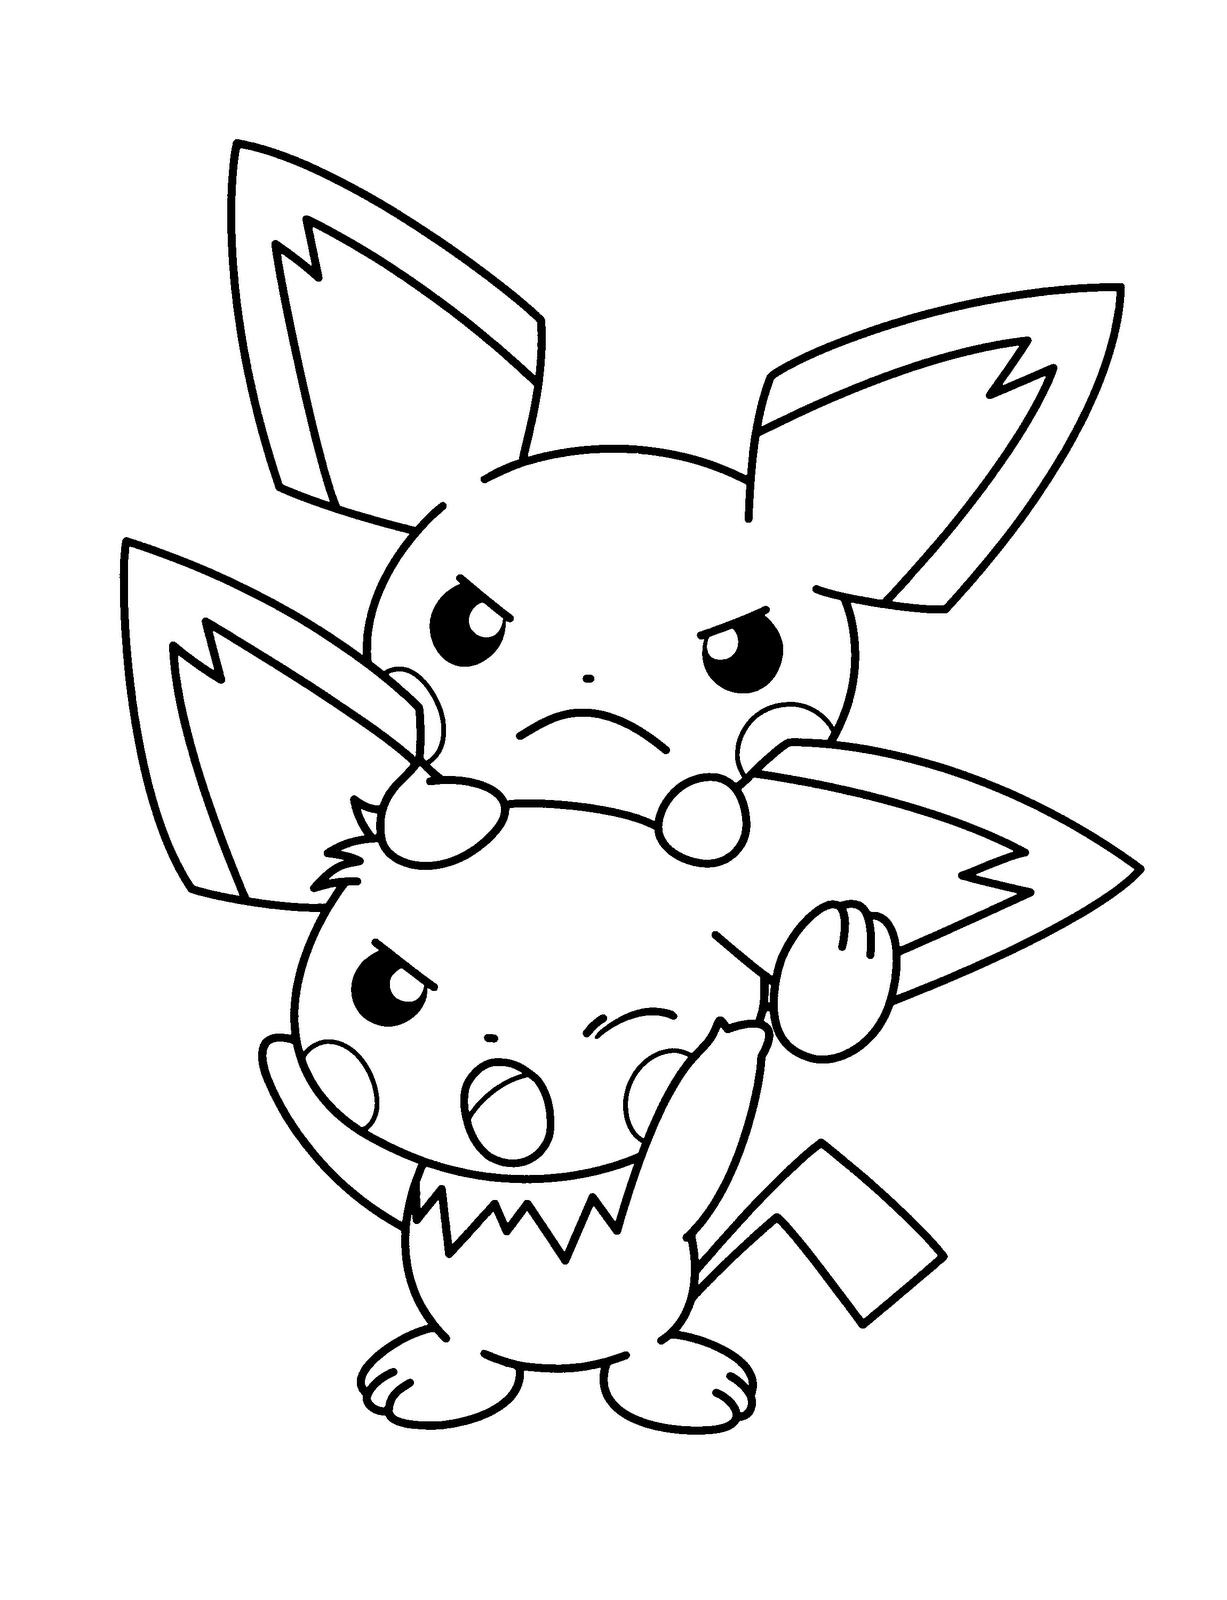 colering pokemon coloring pages pikachu - Pokemon Pics To Color